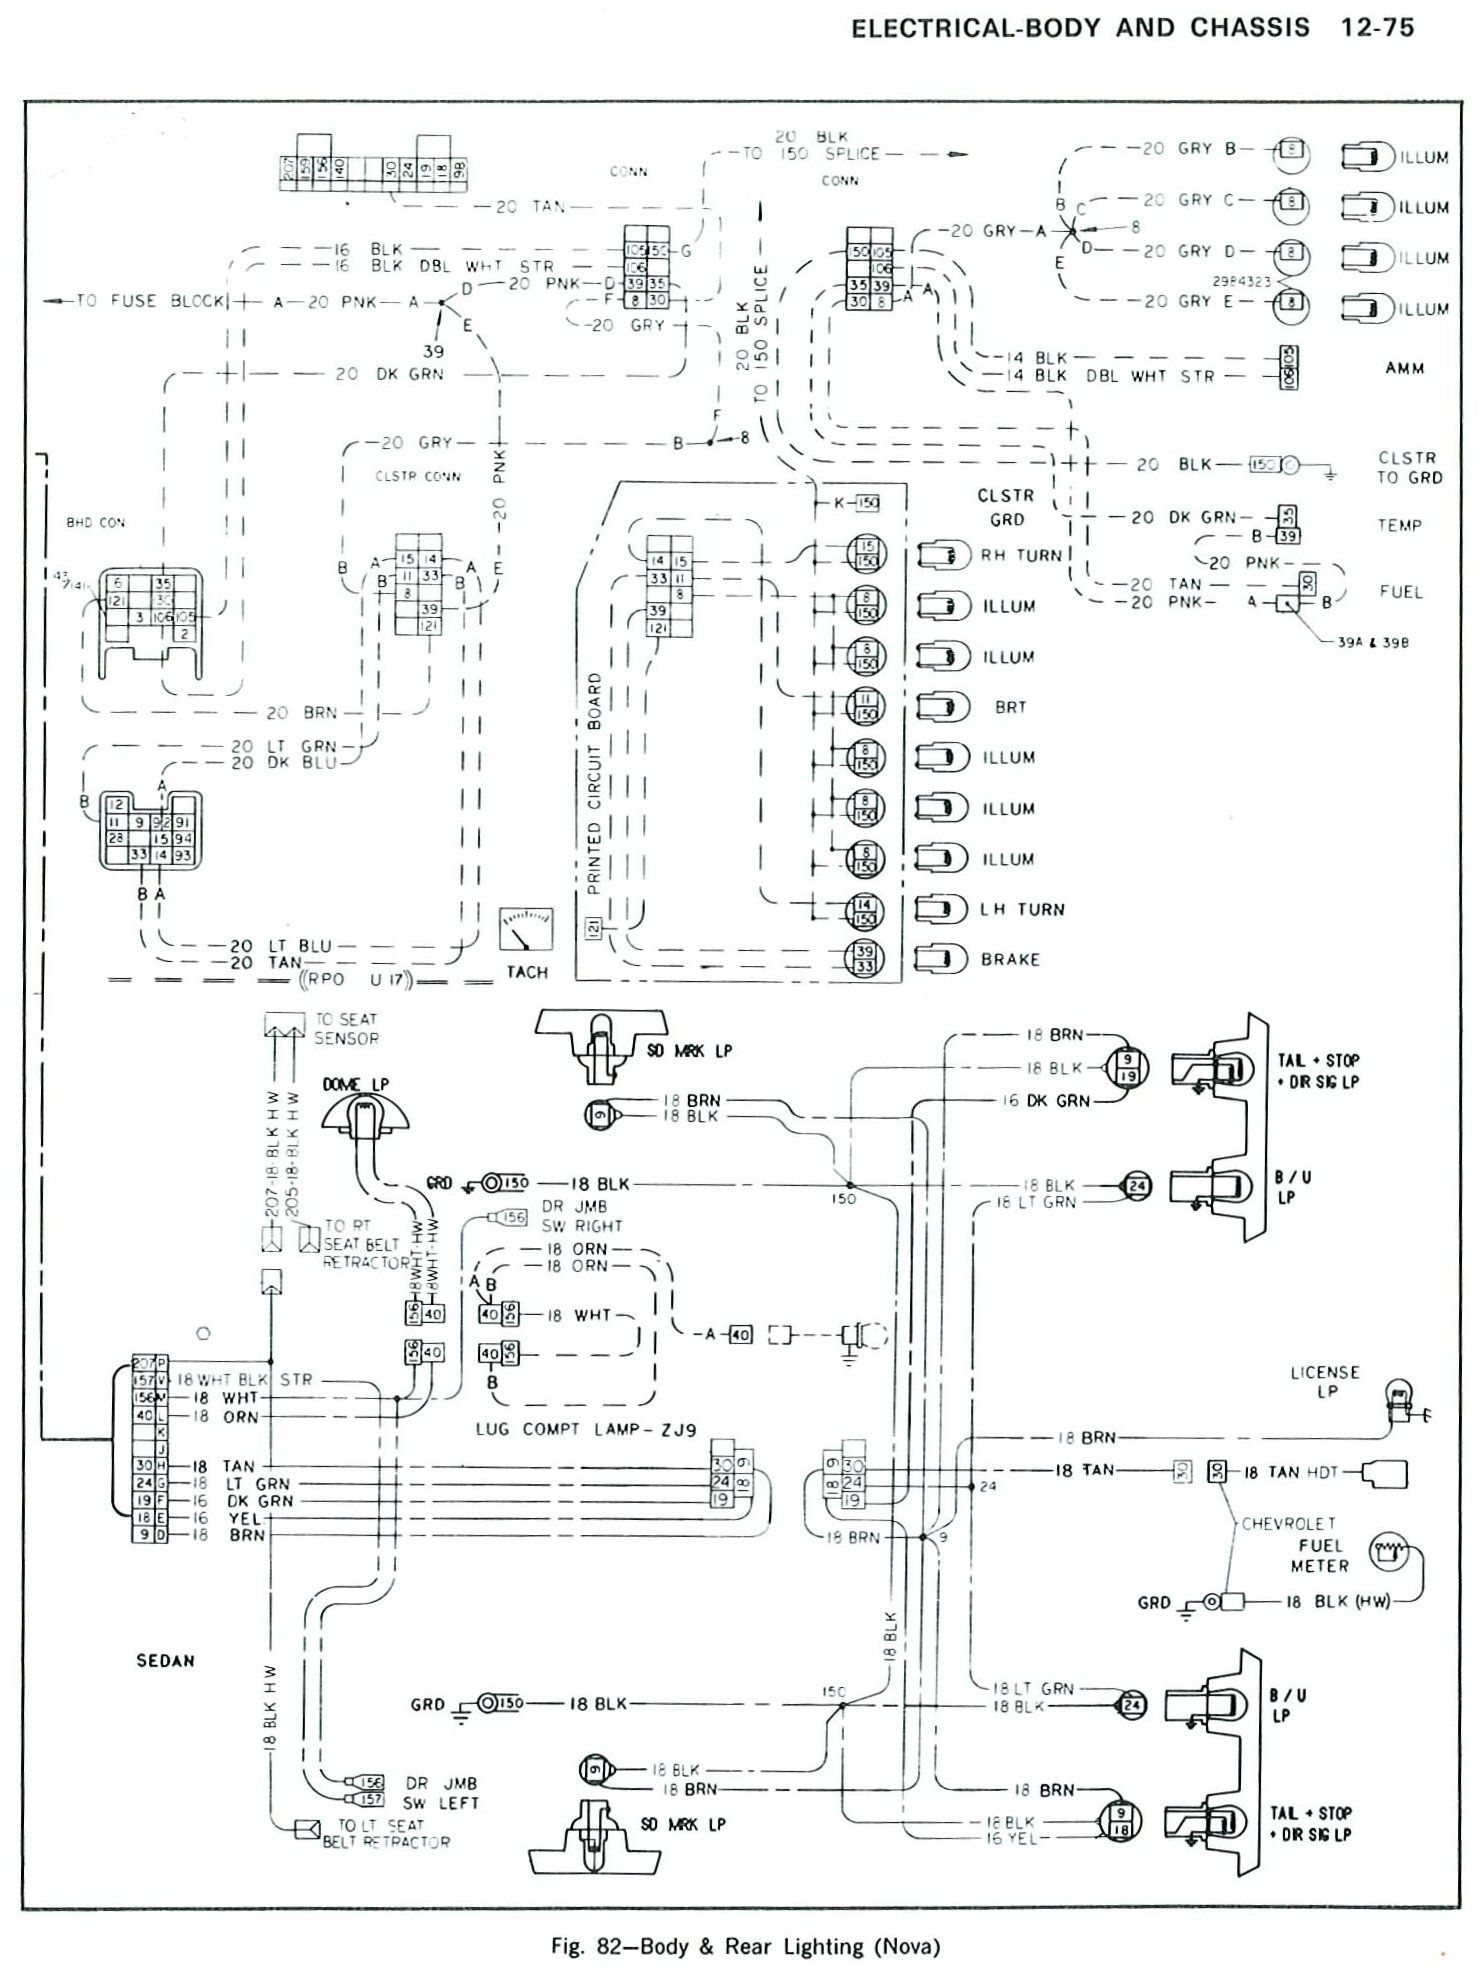 msd 8982 gm hei wiring diagram 85 chevy truck wiring diagram | ... looking at the wiring ...